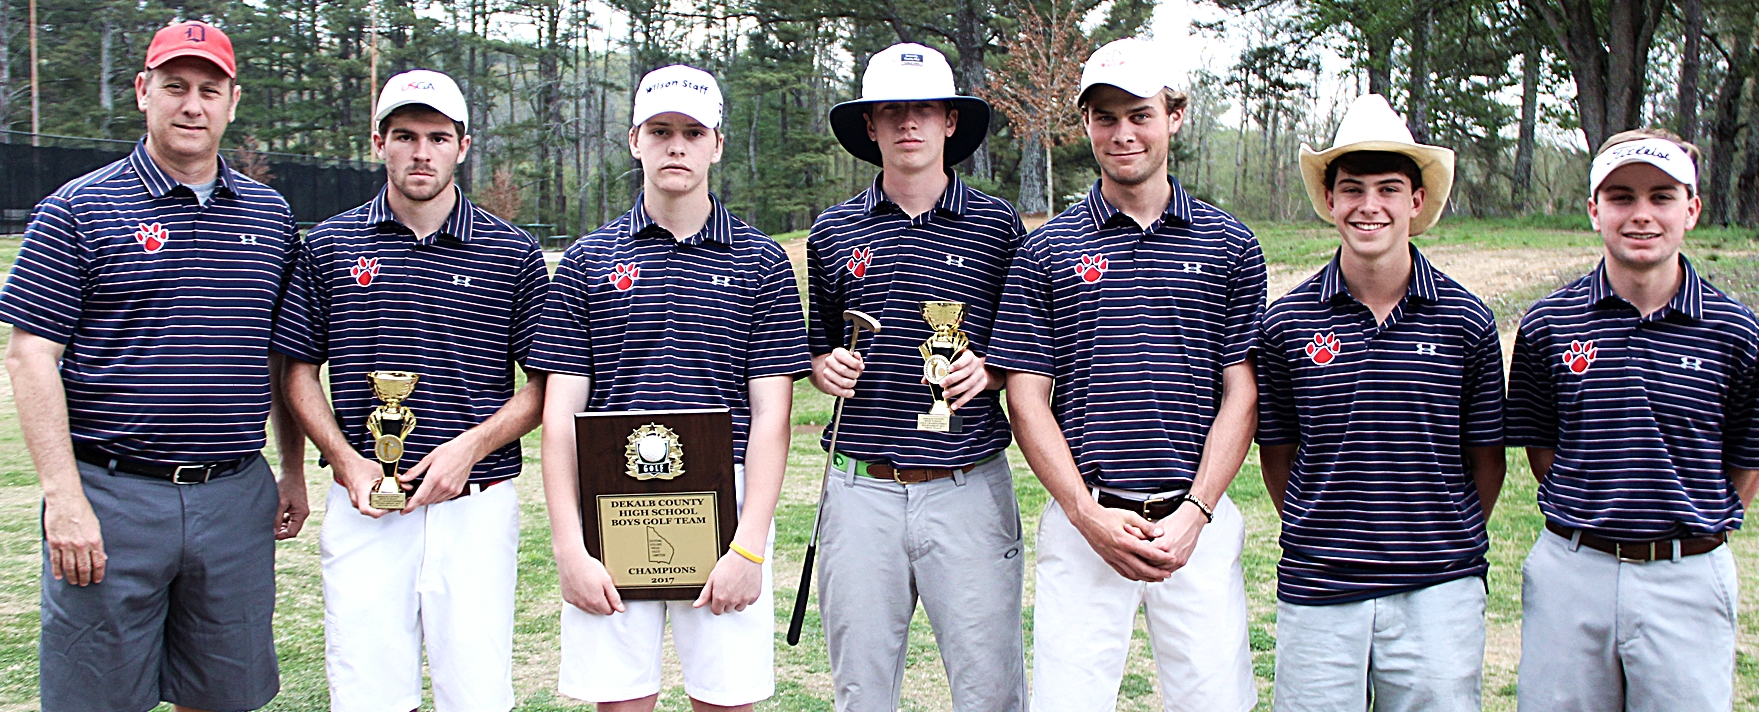 The Dunwoody Wildcats improved 23 strokes on Day 2 of the Class 6A State Tournament to claim 10th overall.